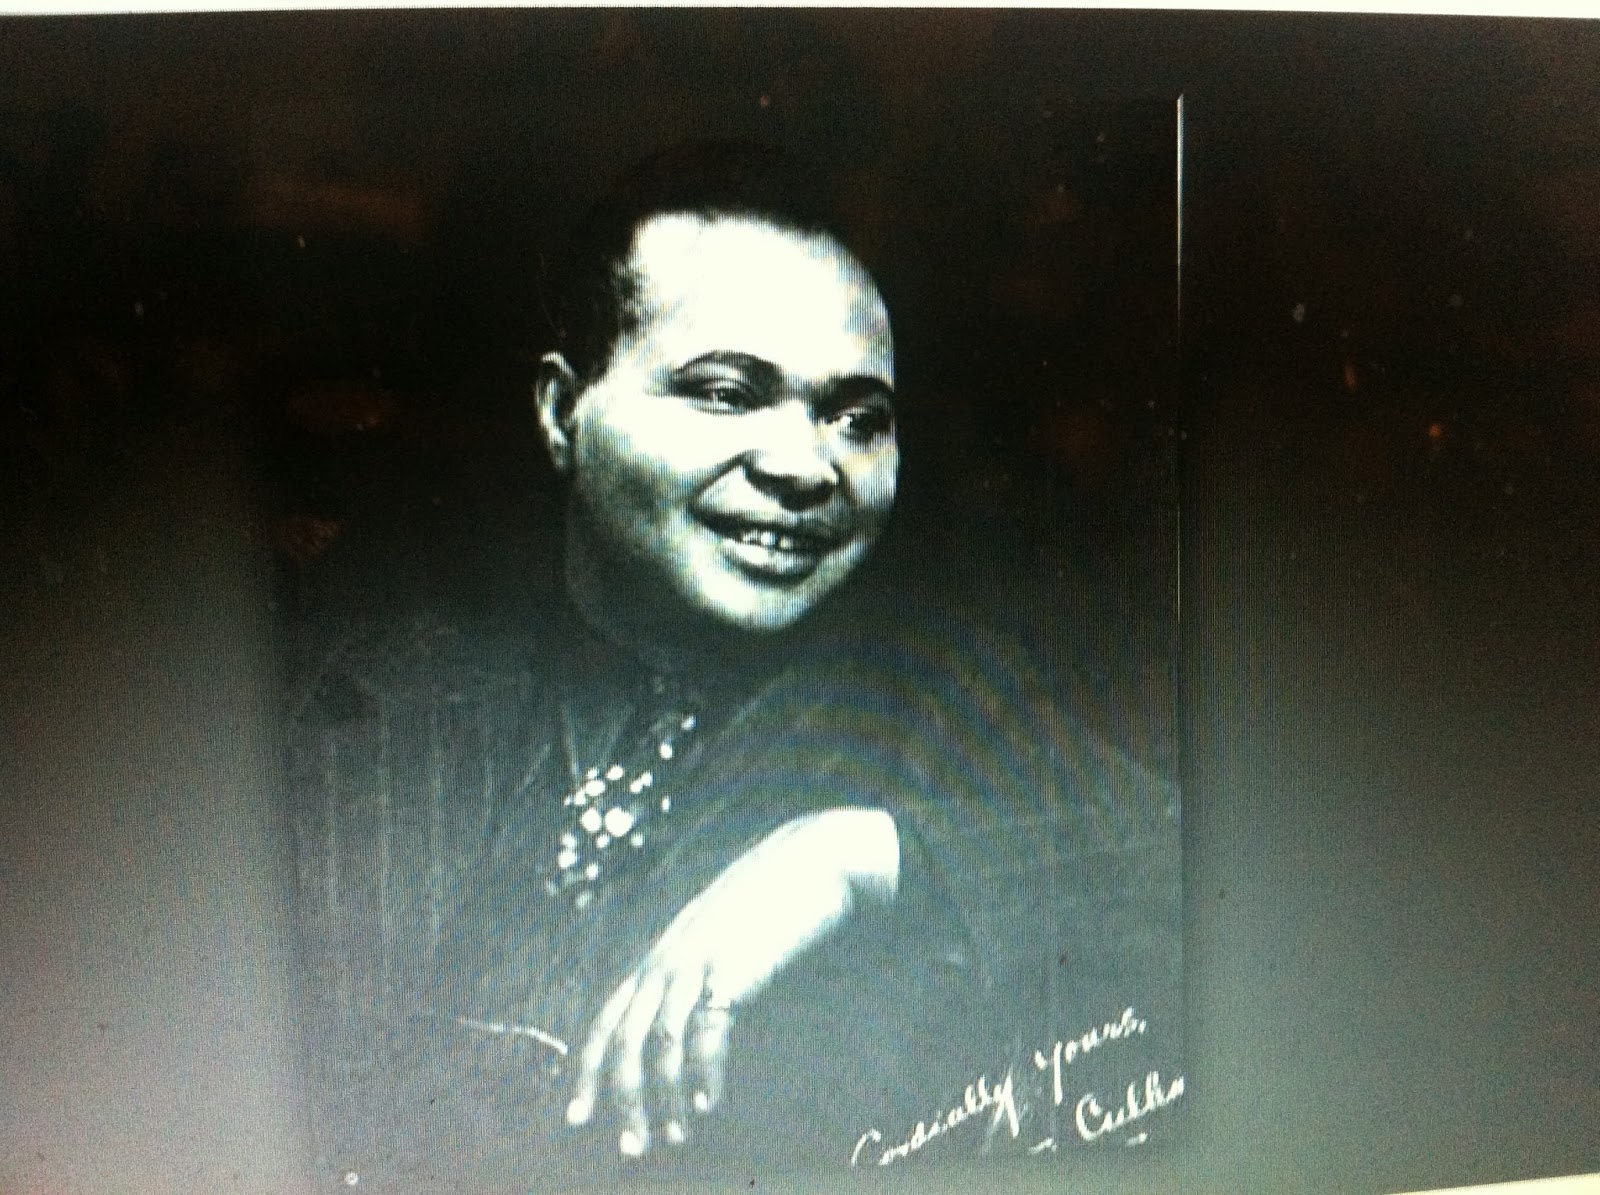 the early life and times of countee cullen porter Born countee porter,  renewed interest in his life and works at the end of the  i thought you might like to see a memorial for countee cullen i found on .